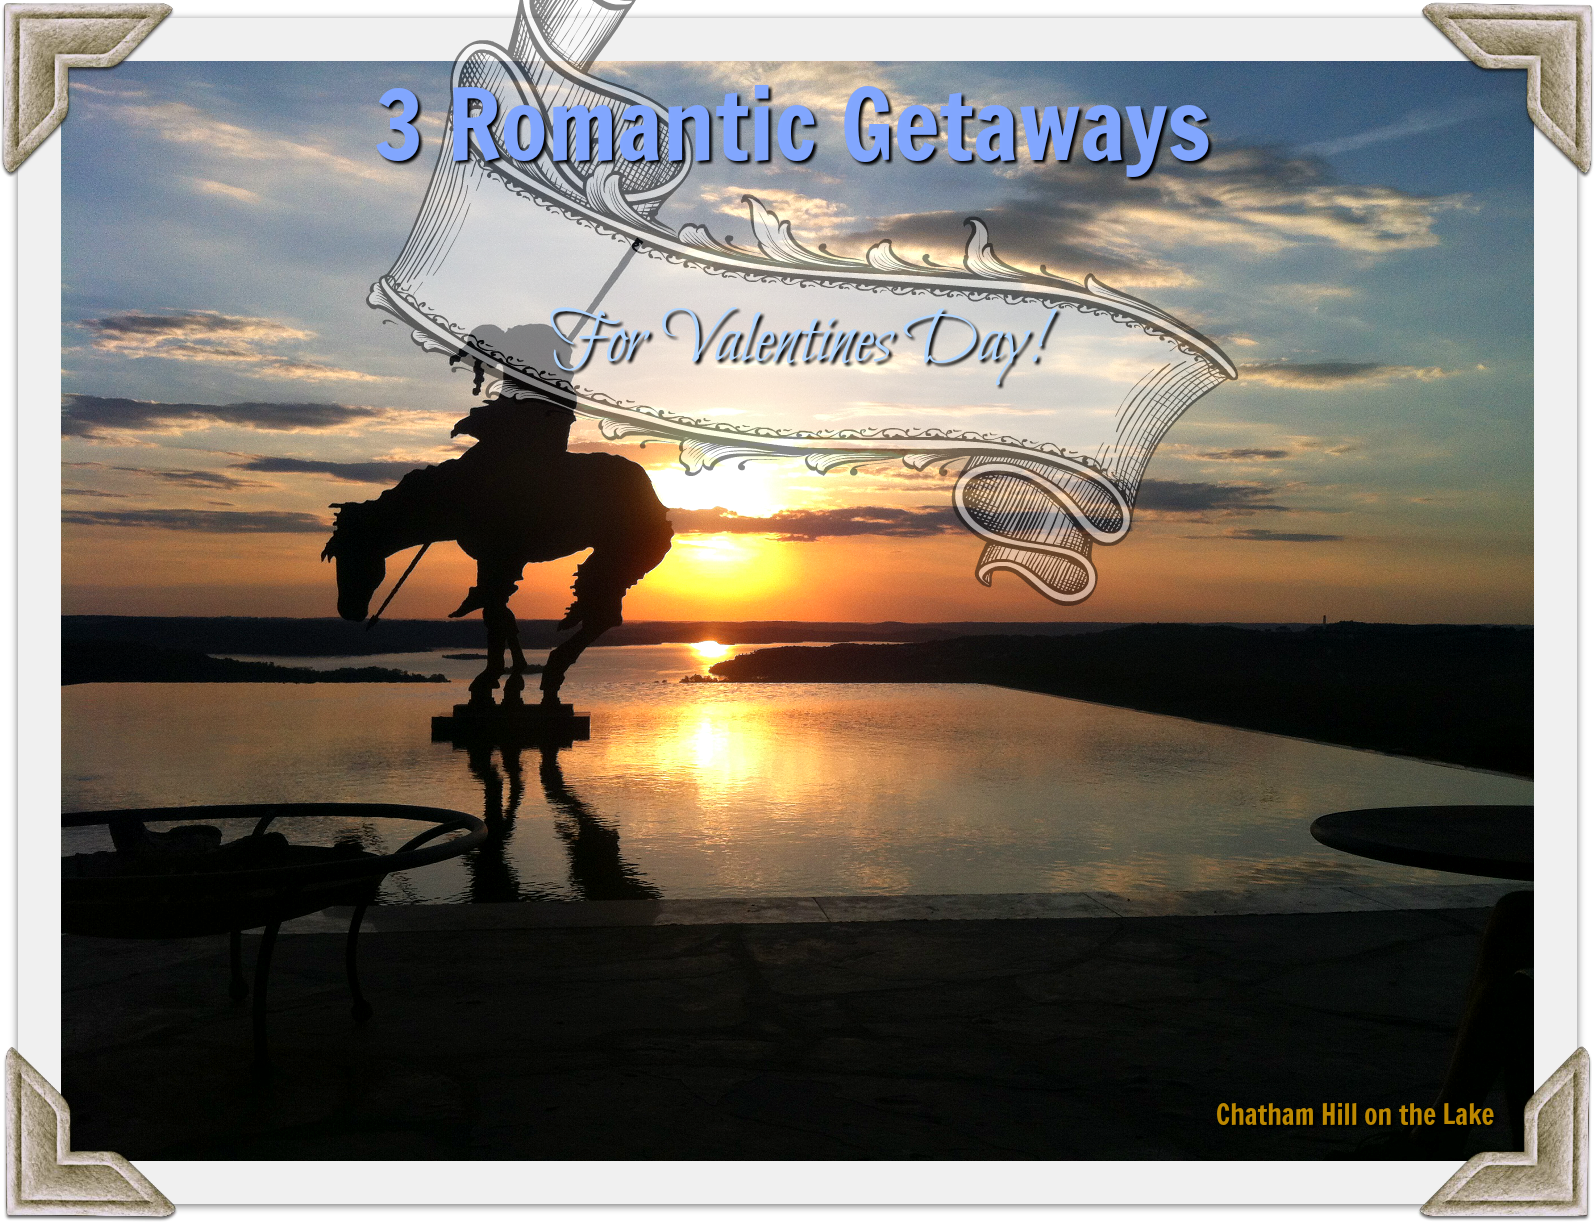 Romantic Getaway For Valentines Day! – Part 3 Big Cedar Lodge